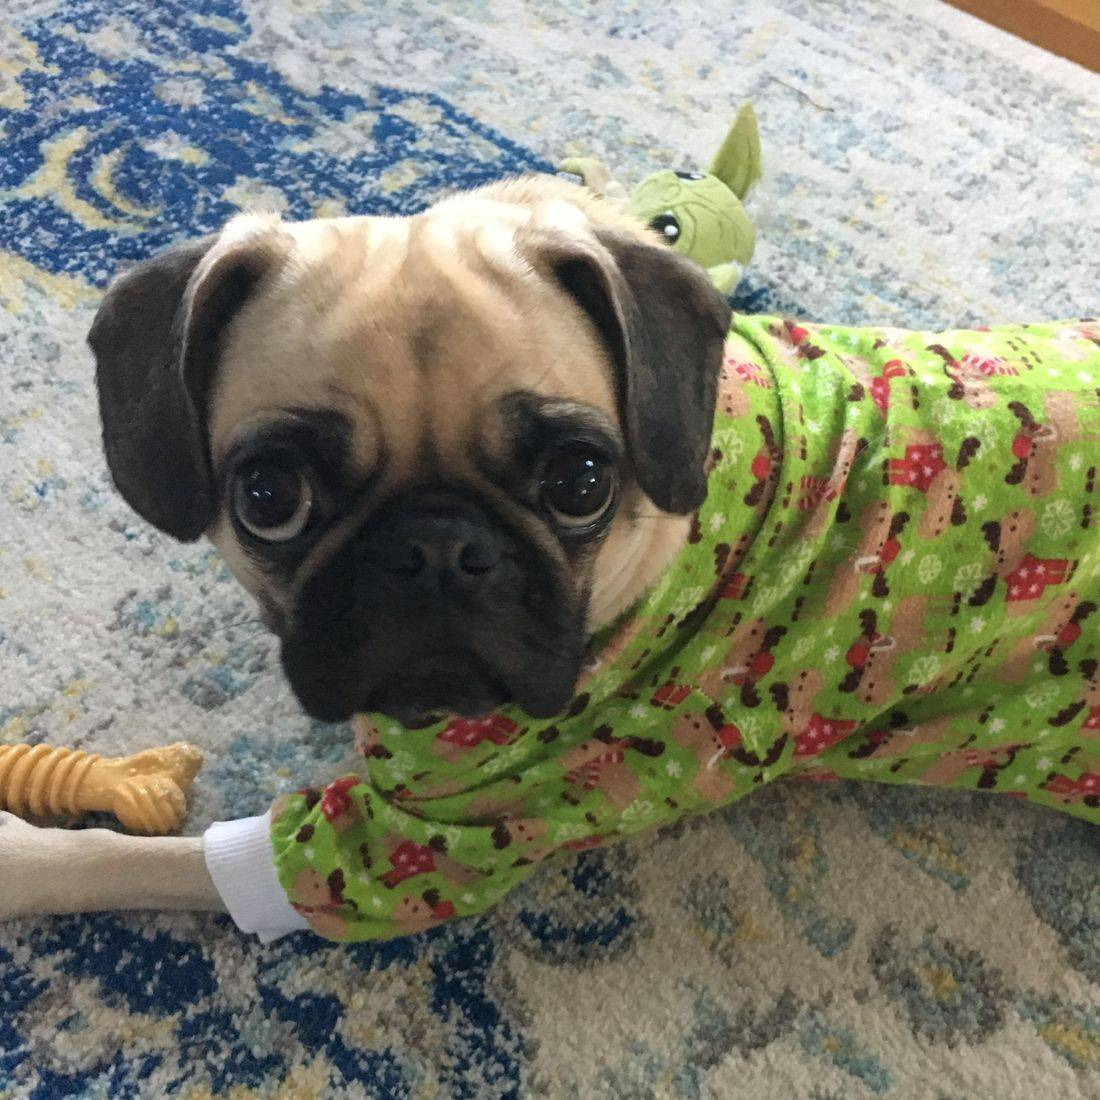 Pug dog in pajamas laying on a rug